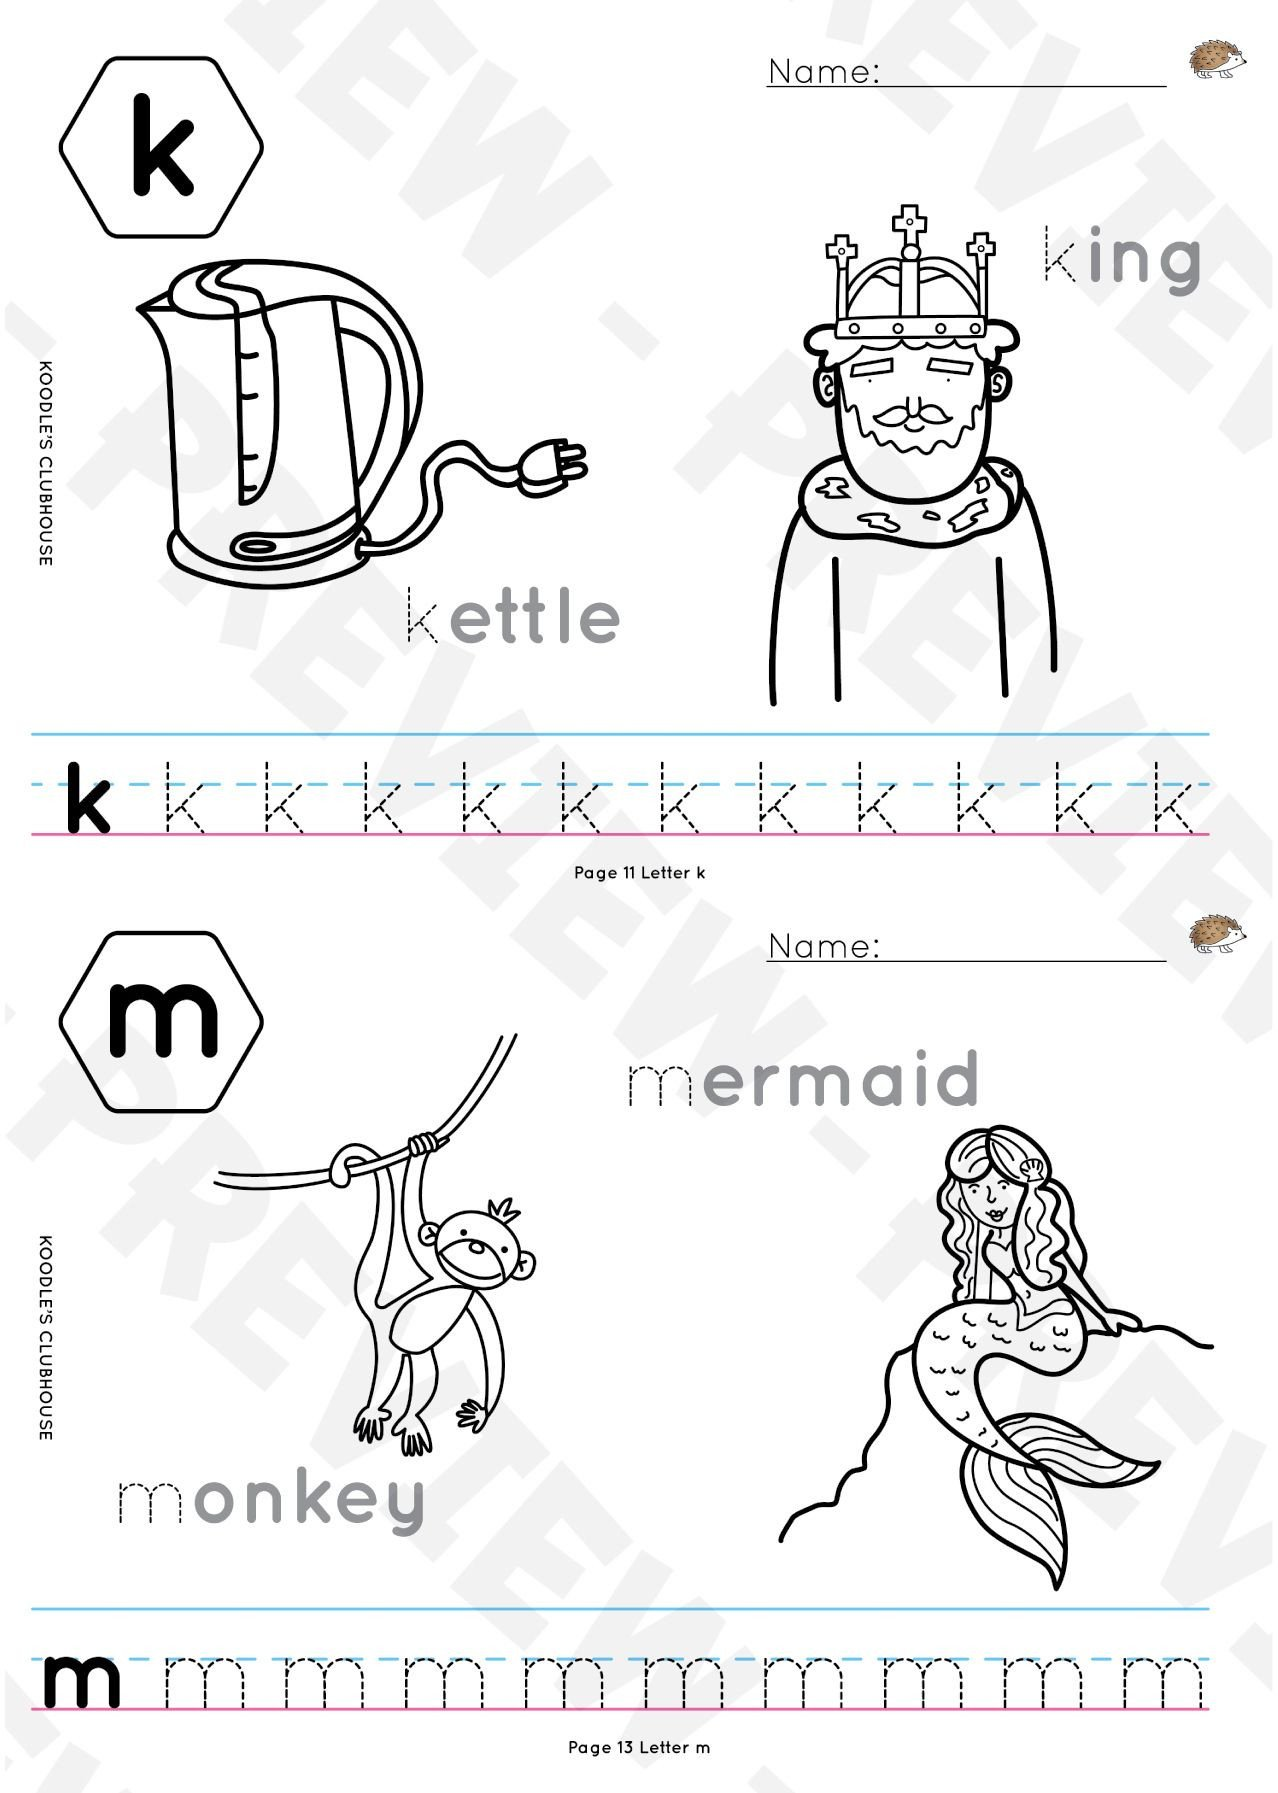 Letter sound Recognition Worksheets A to Z Reproducible Tracing Worksheets with Outline Pictures